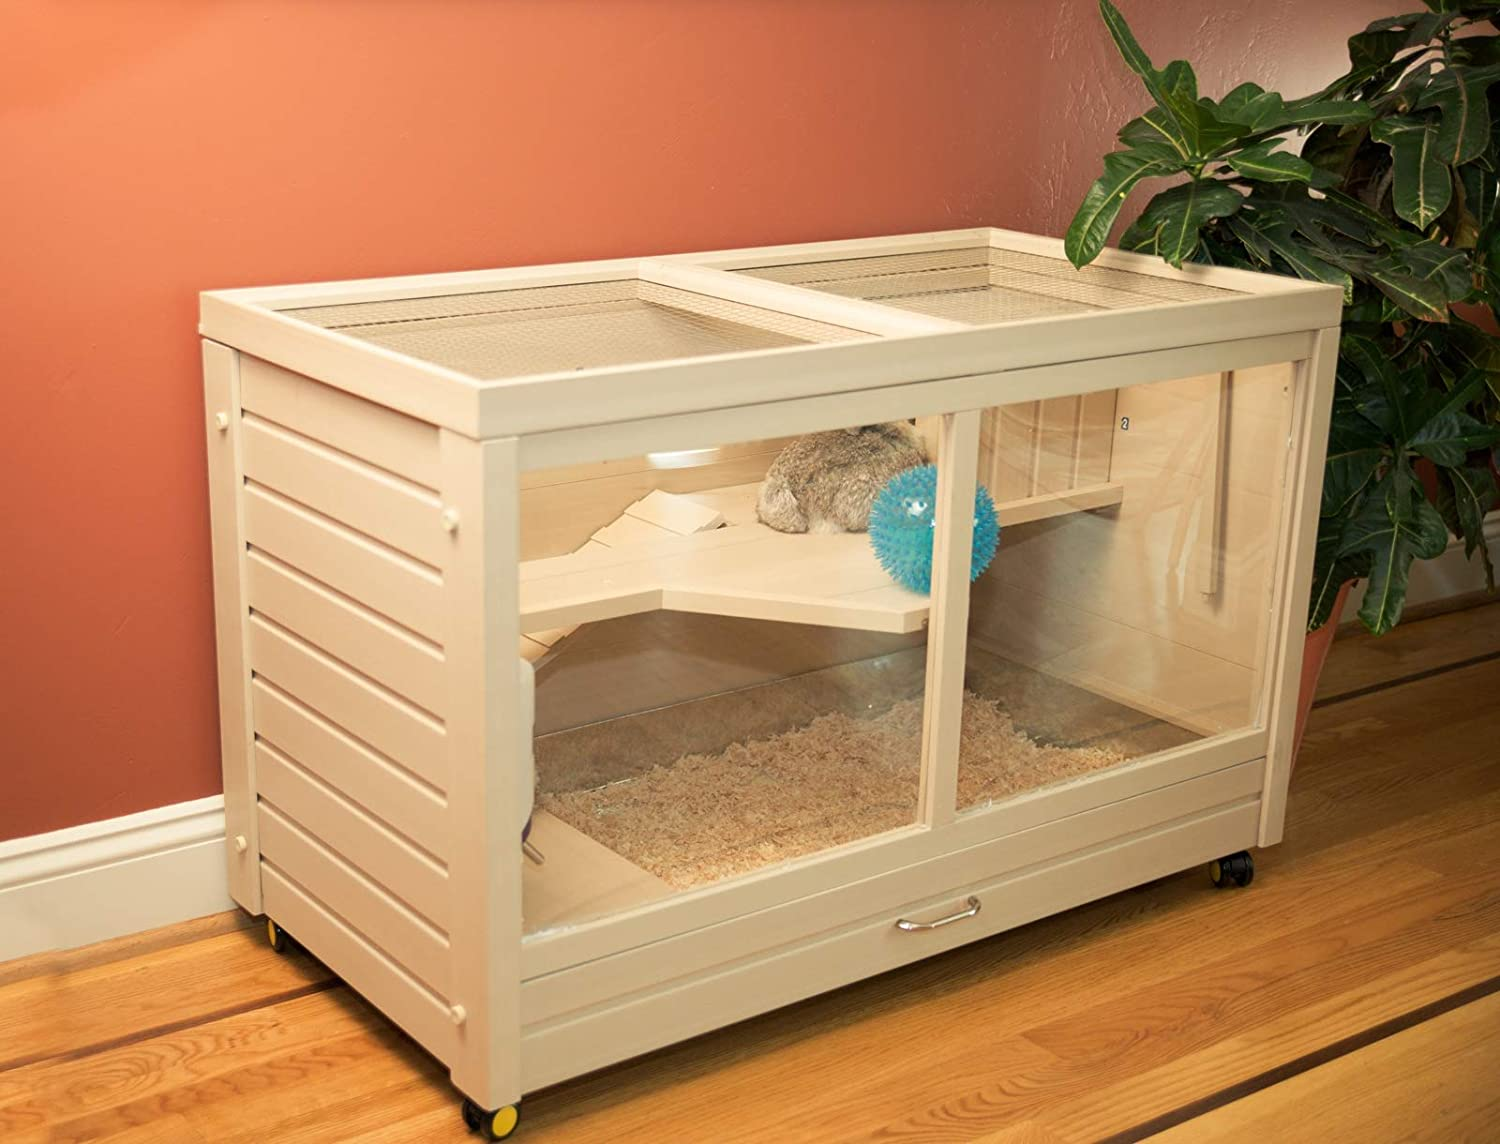 Maple ecoFLEX Indoor Rabbit Hutch